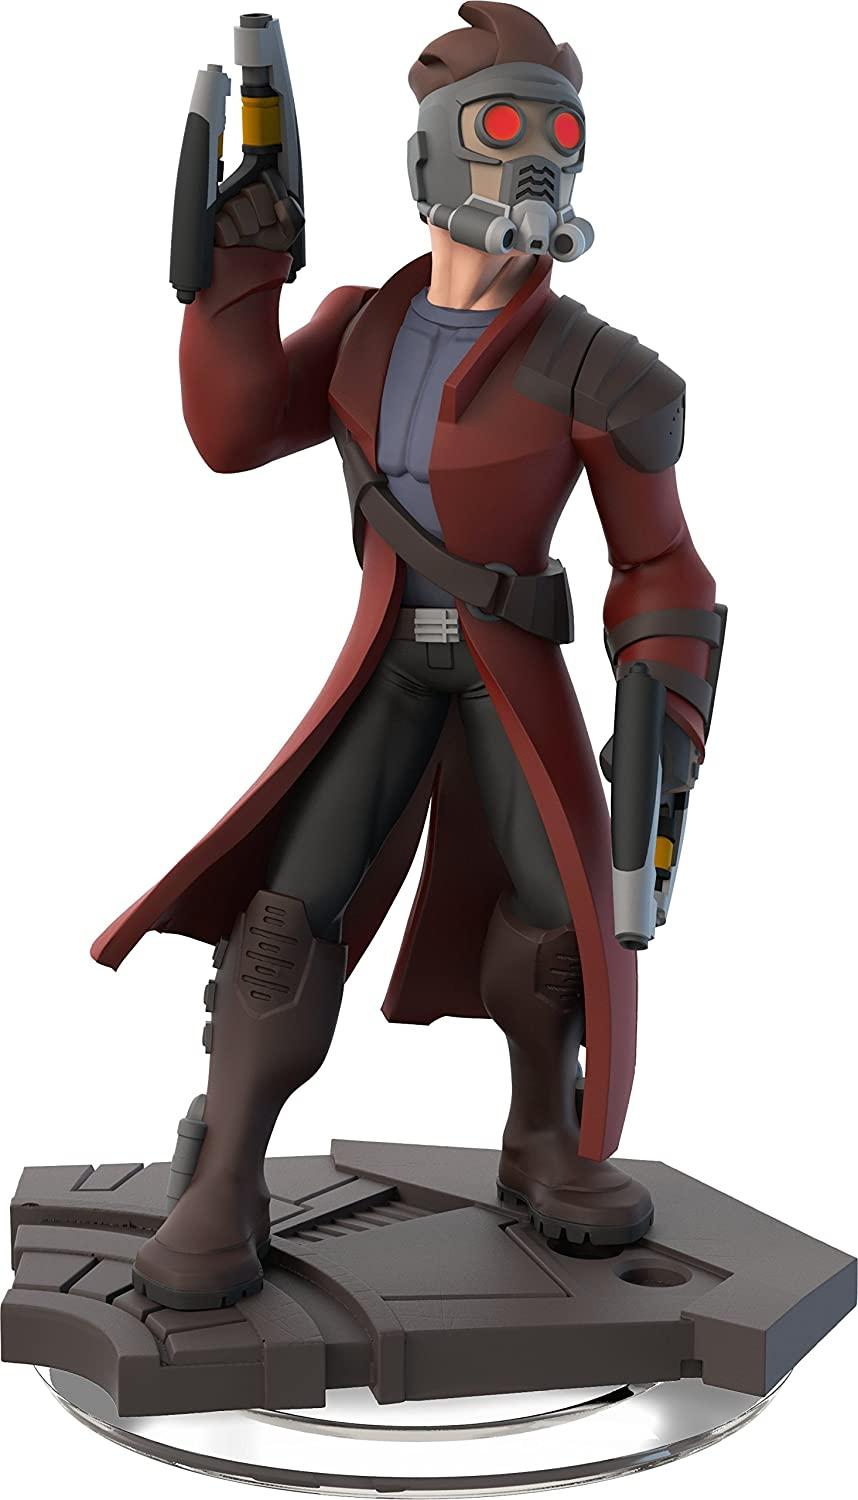 Vente groupée Figurine Groot Disney Infinity 2.0 : Marvel